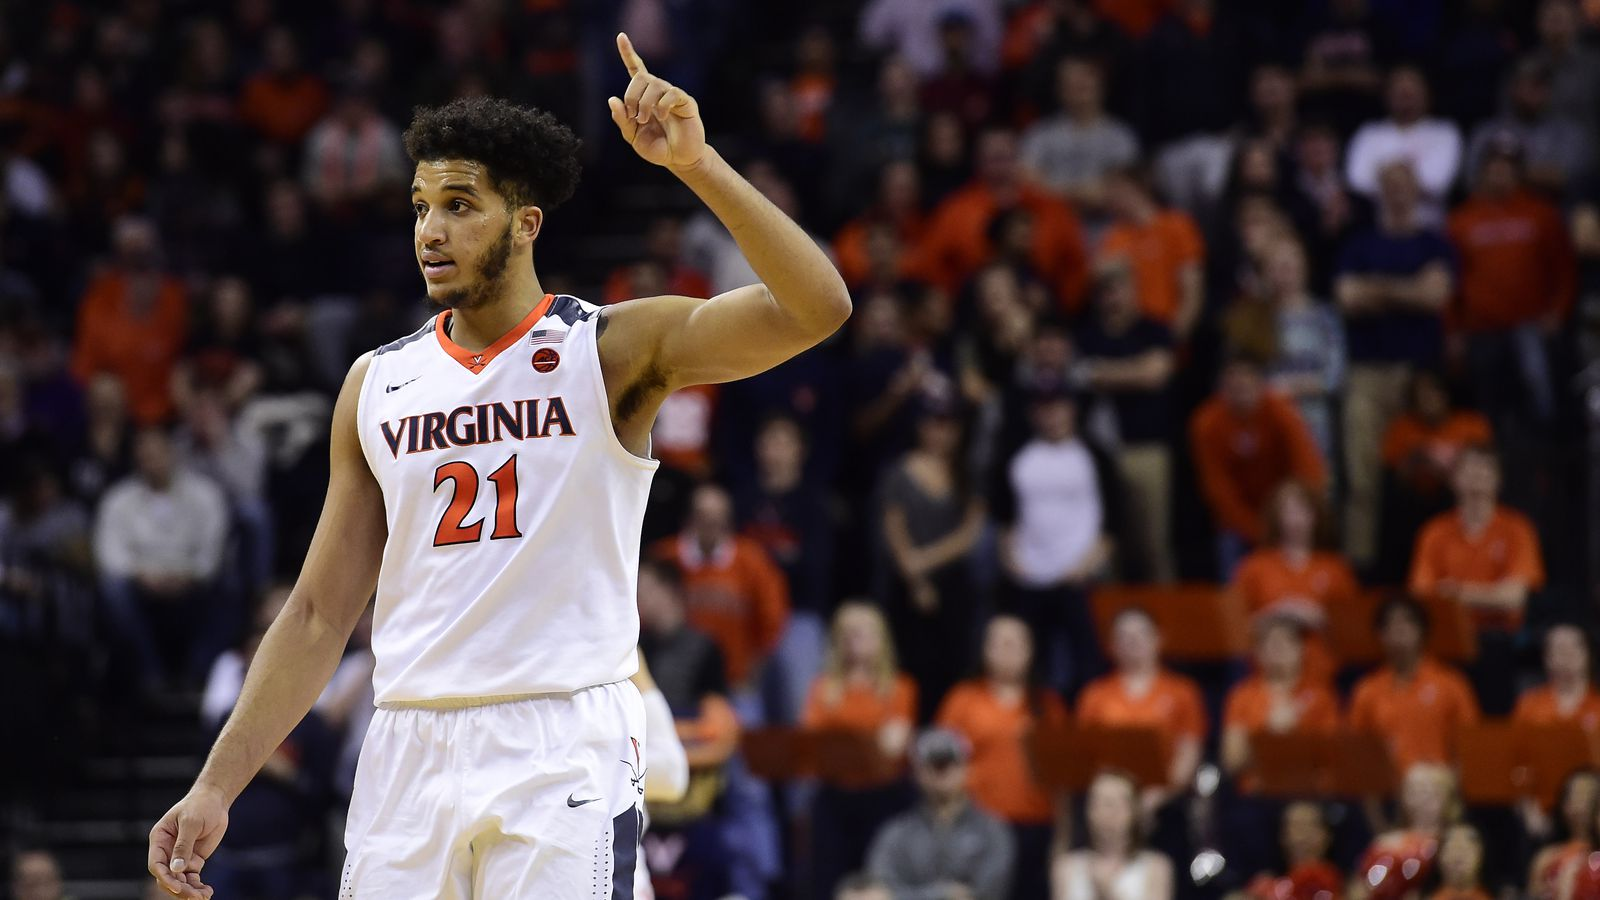 Versatile Isaiah Wilkins Relishes Role With Cavaliers